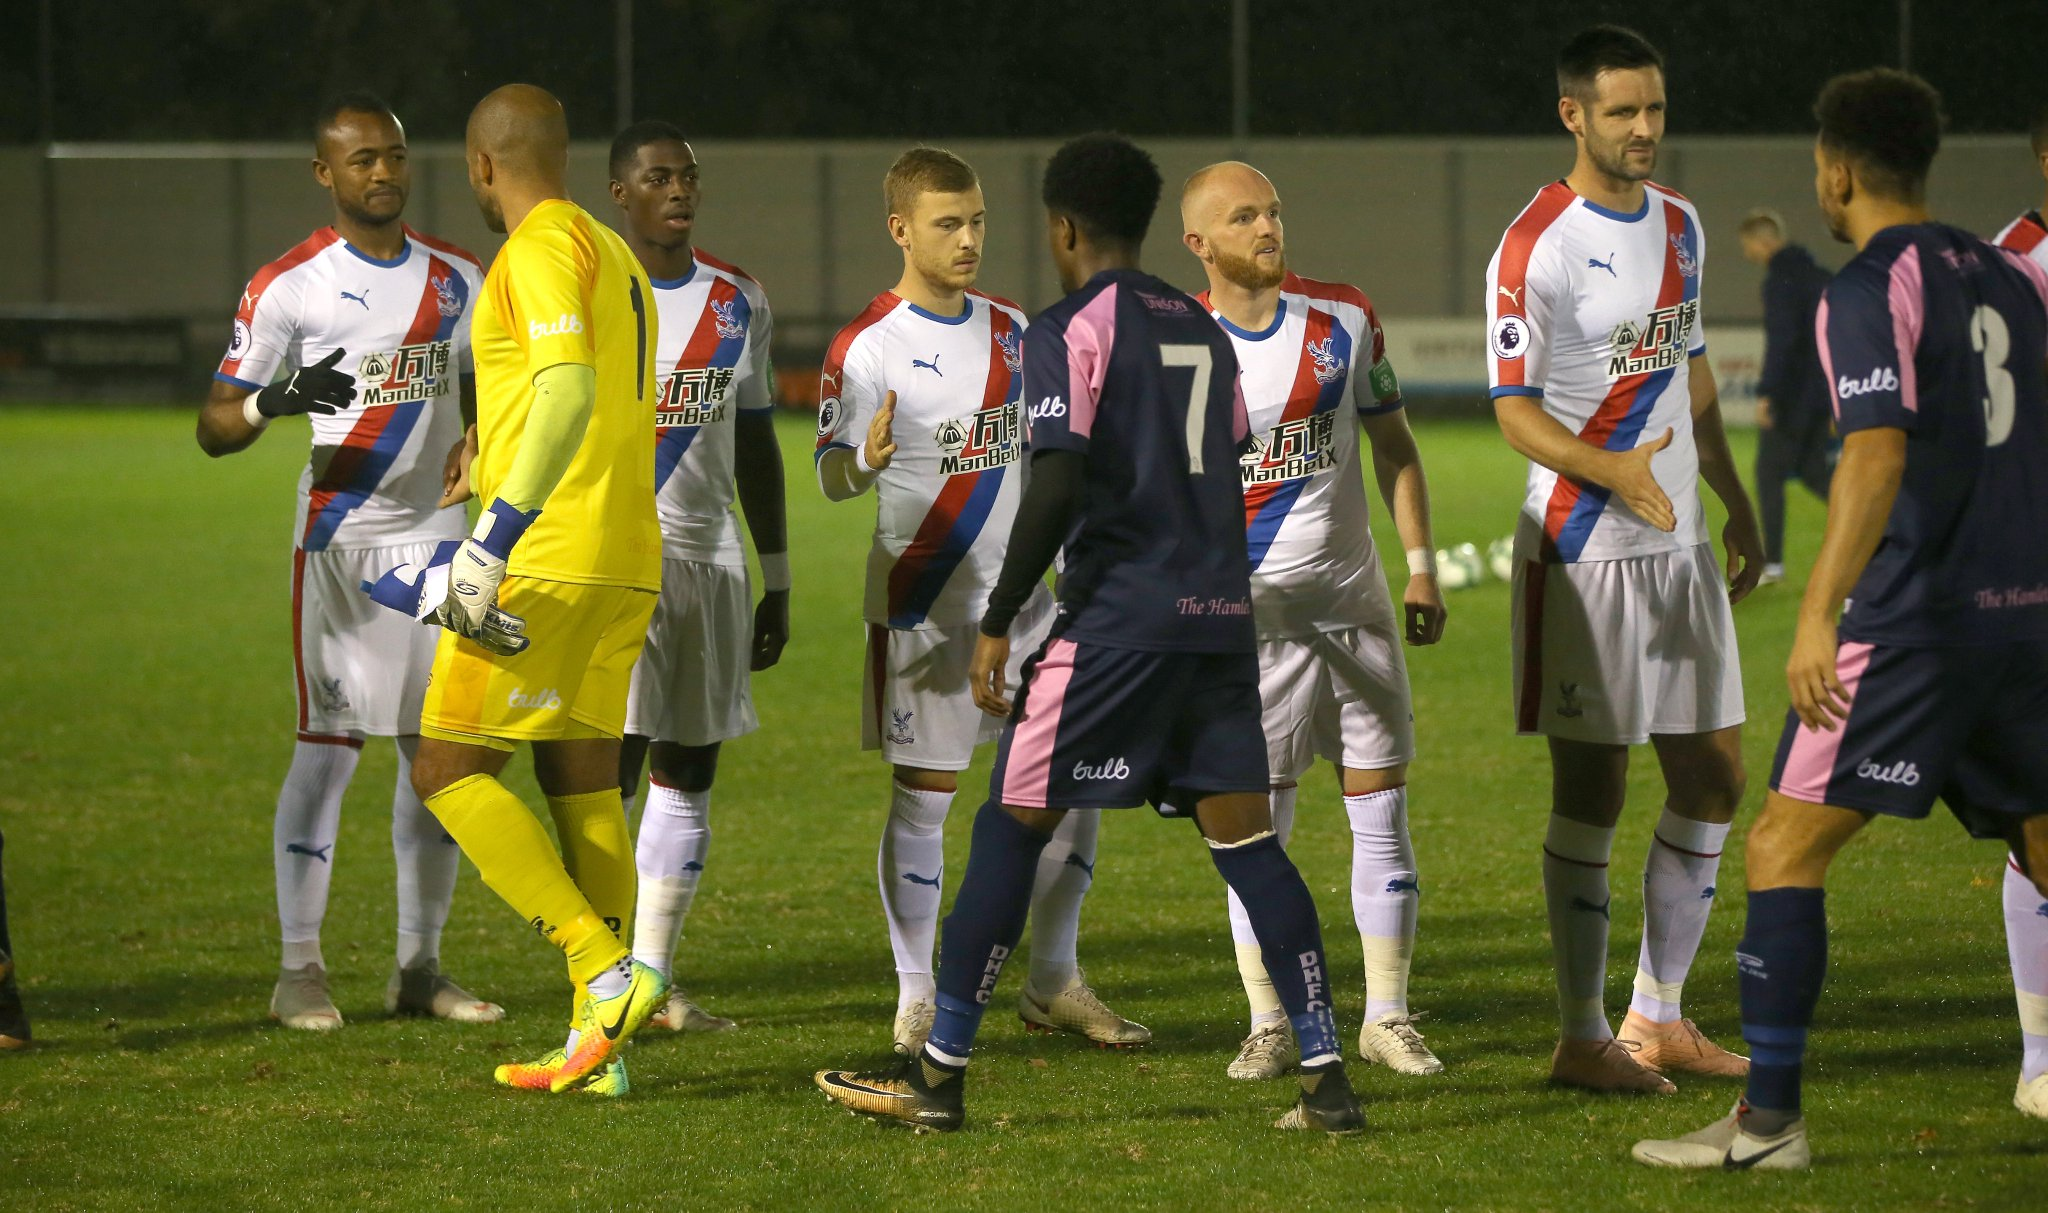 Dulwich Hamlet goalkeeper Preston Edwards nearly has his car towed whilst playing in goal vs Crystal Palace